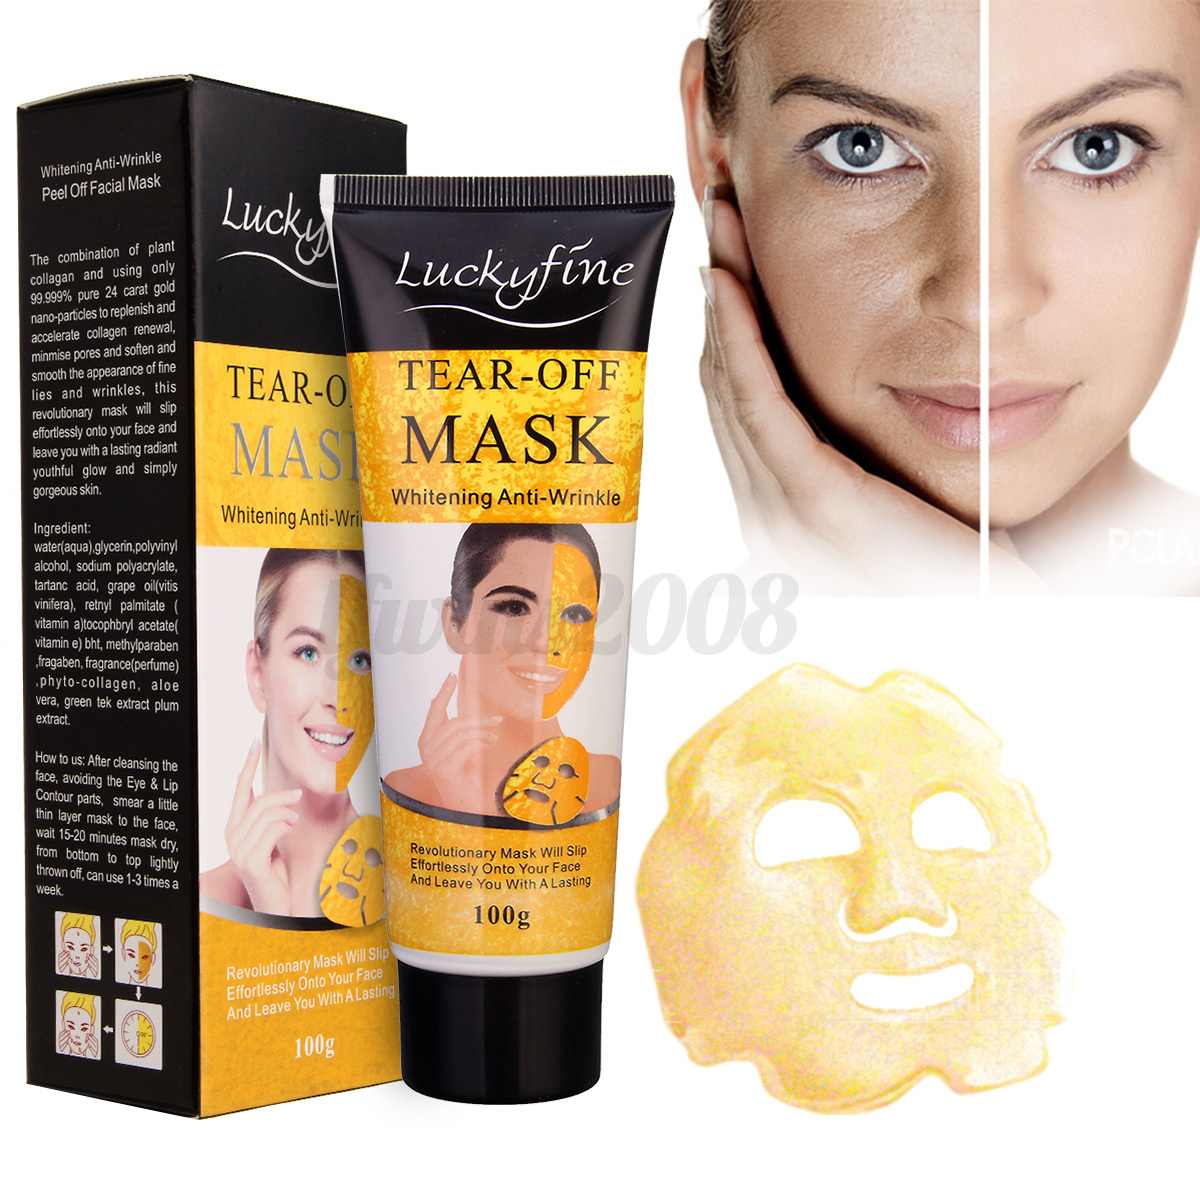 24k or collag ne dor hydratant masque peau anti rides ge visage facial peeling ebay. Black Bedroom Furniture Sets. Home Design Ideas